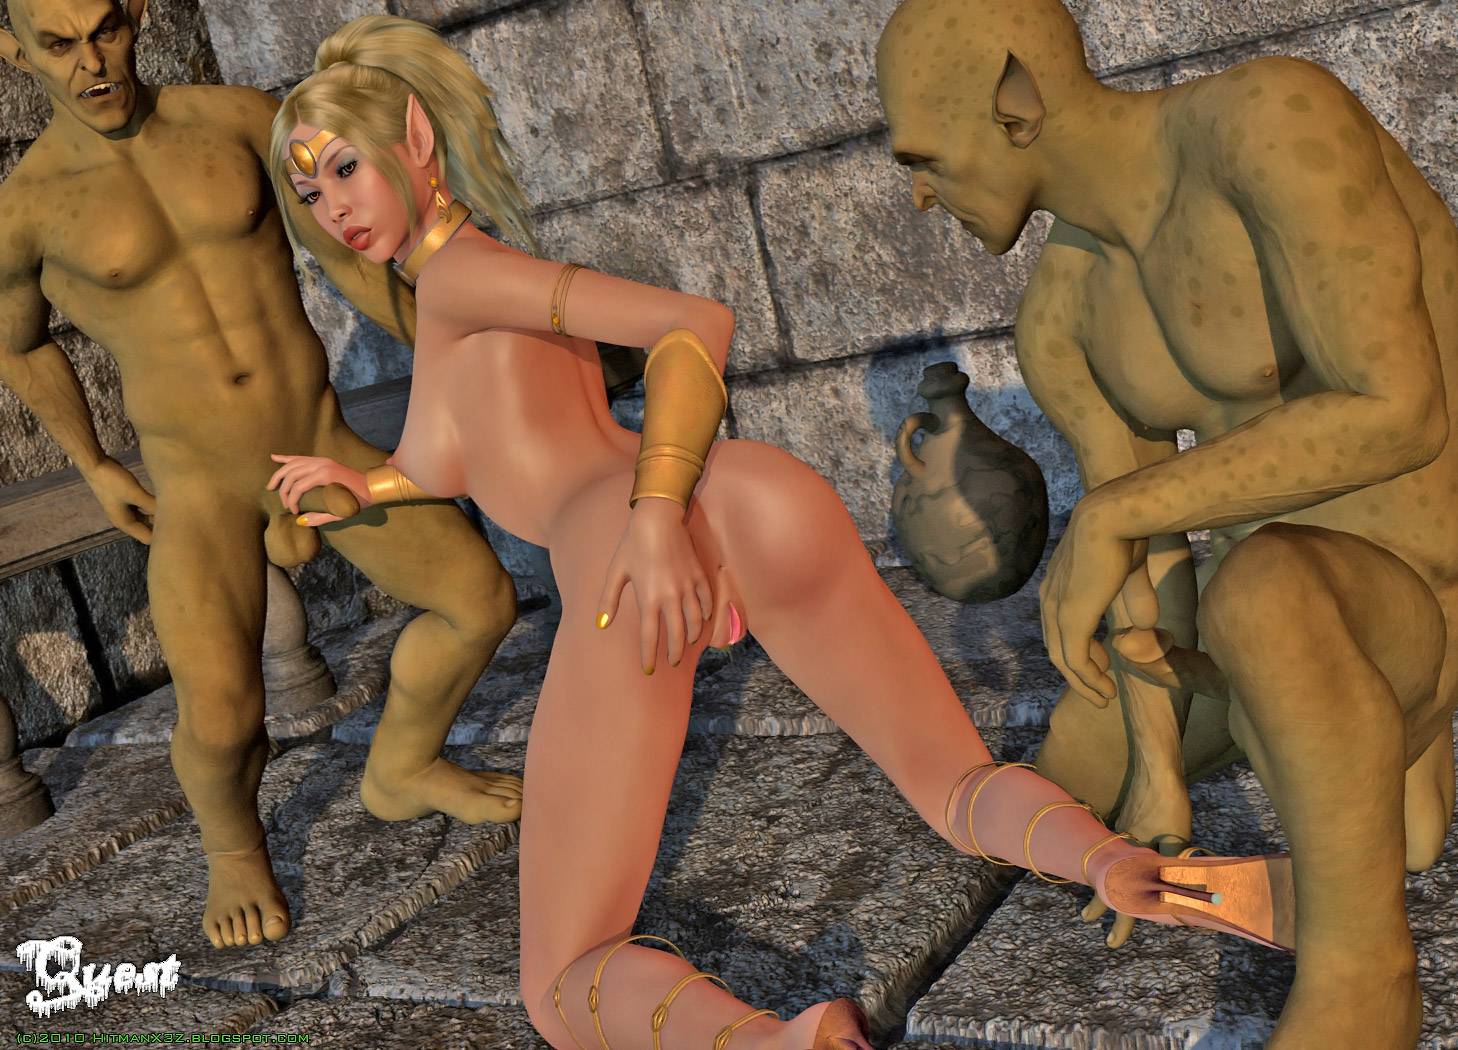 Free monster sex toons videos cartoon galleries